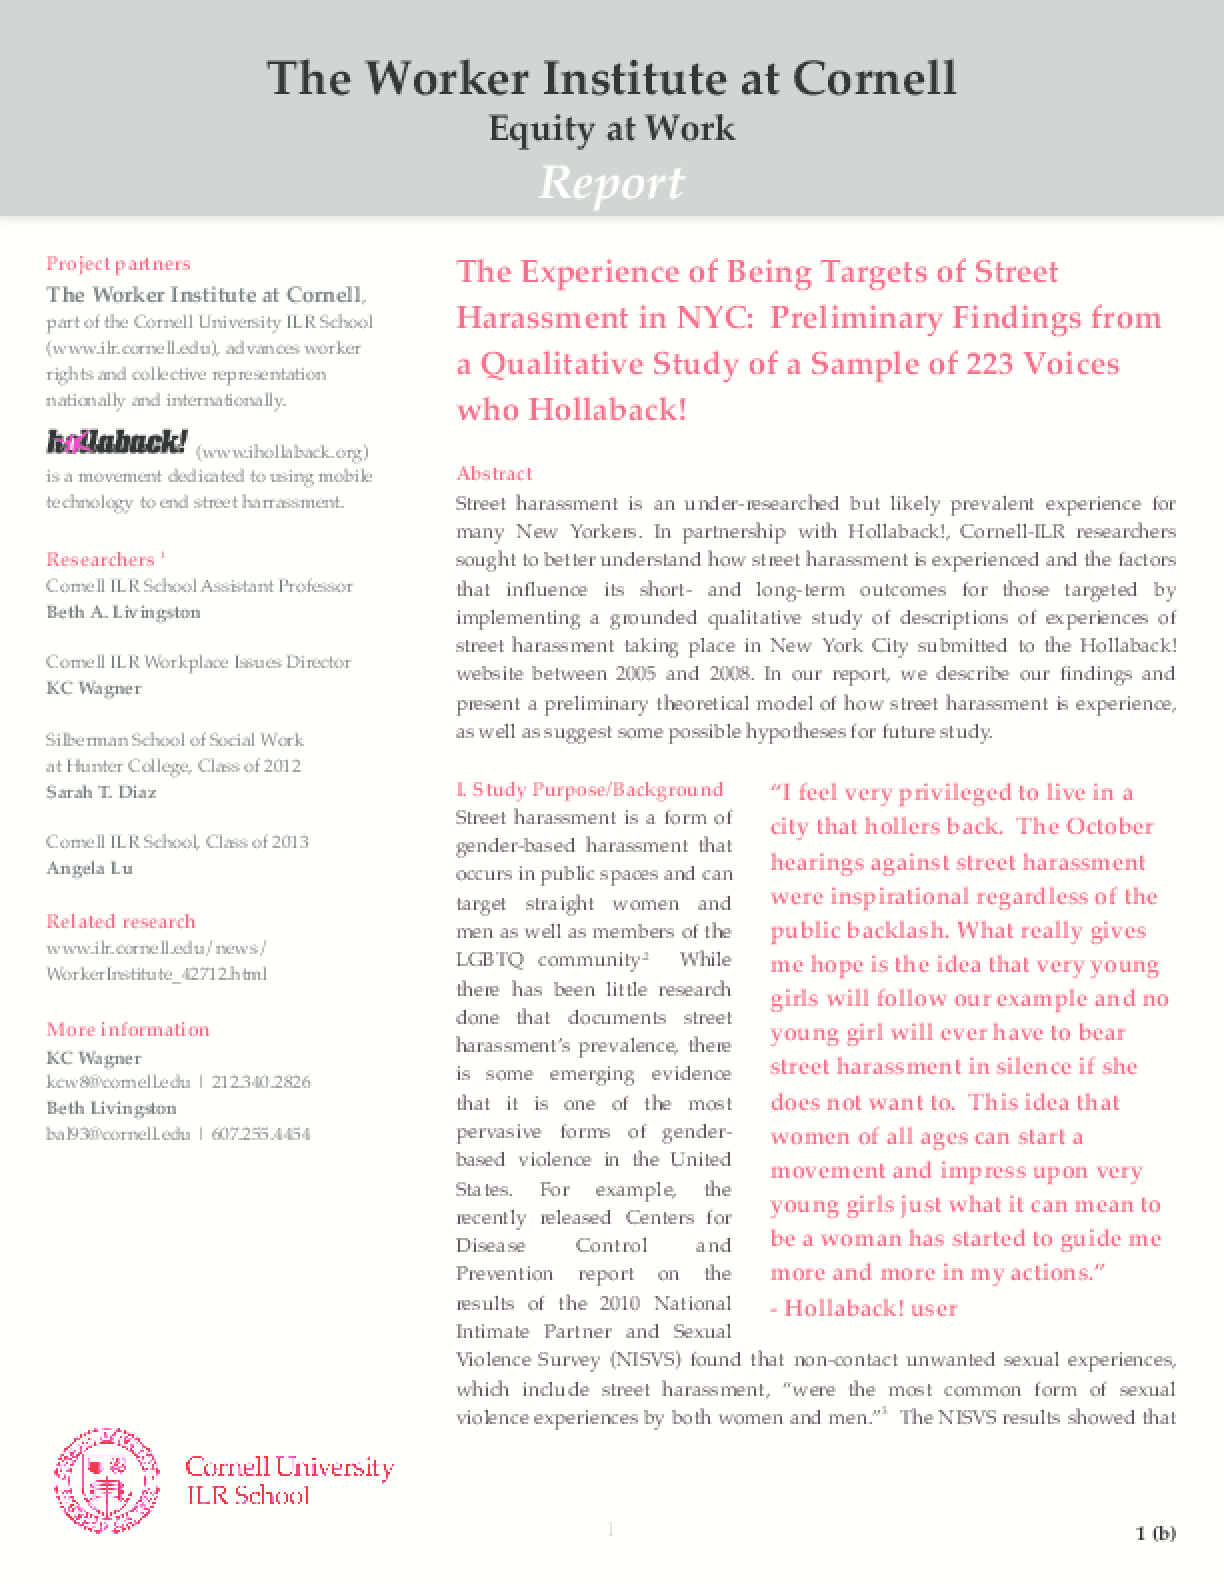 The Experience of Being Targets of Street Harassment in NYC: Preliminary Findings from a Qualitative Study Sample of 223 Voices who Hollaback!